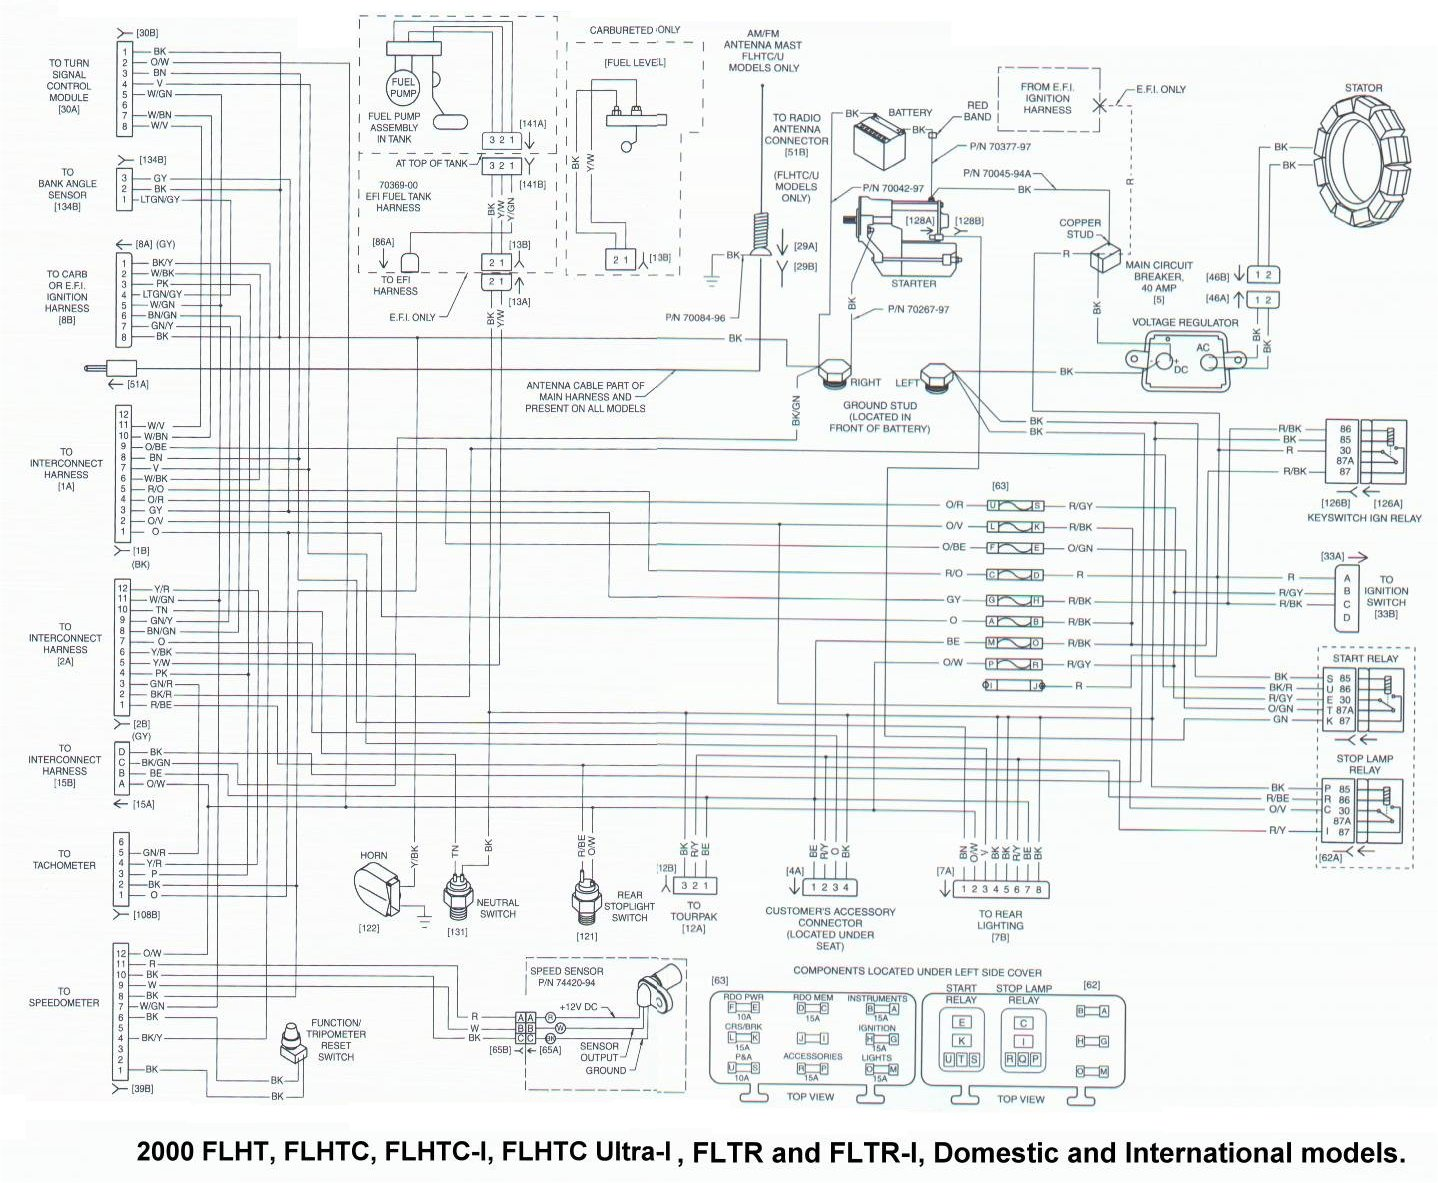 1996 flhr wiring diagram online circuit wiring diagram u2022 rh electrobuddha co uk